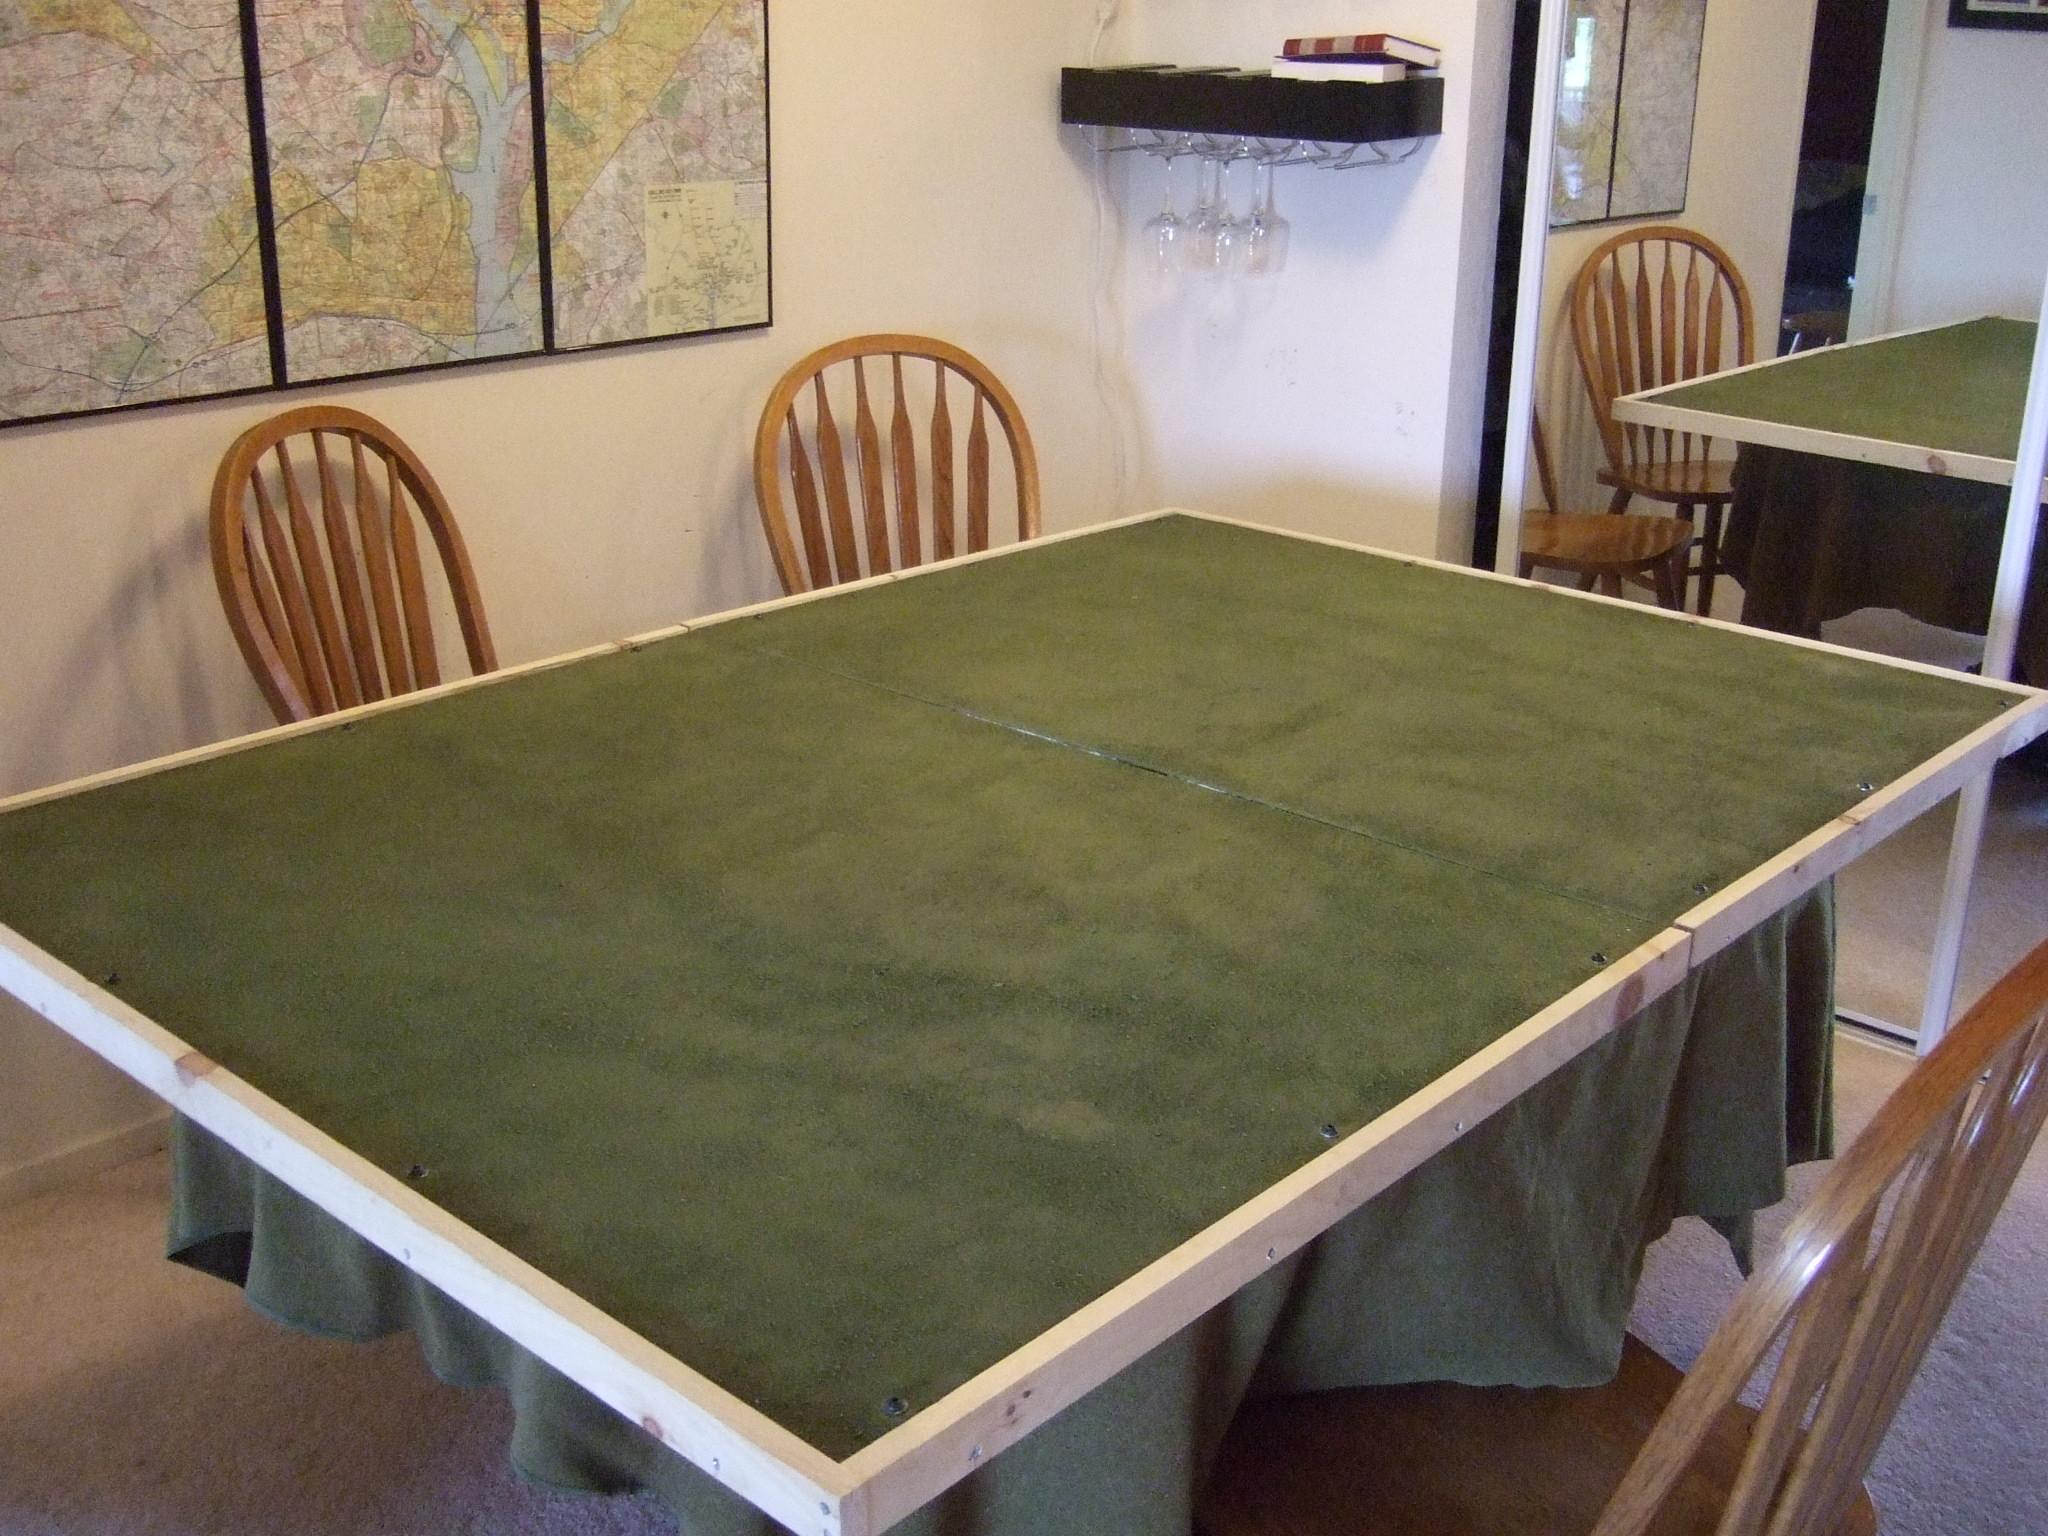 finished table (green side)